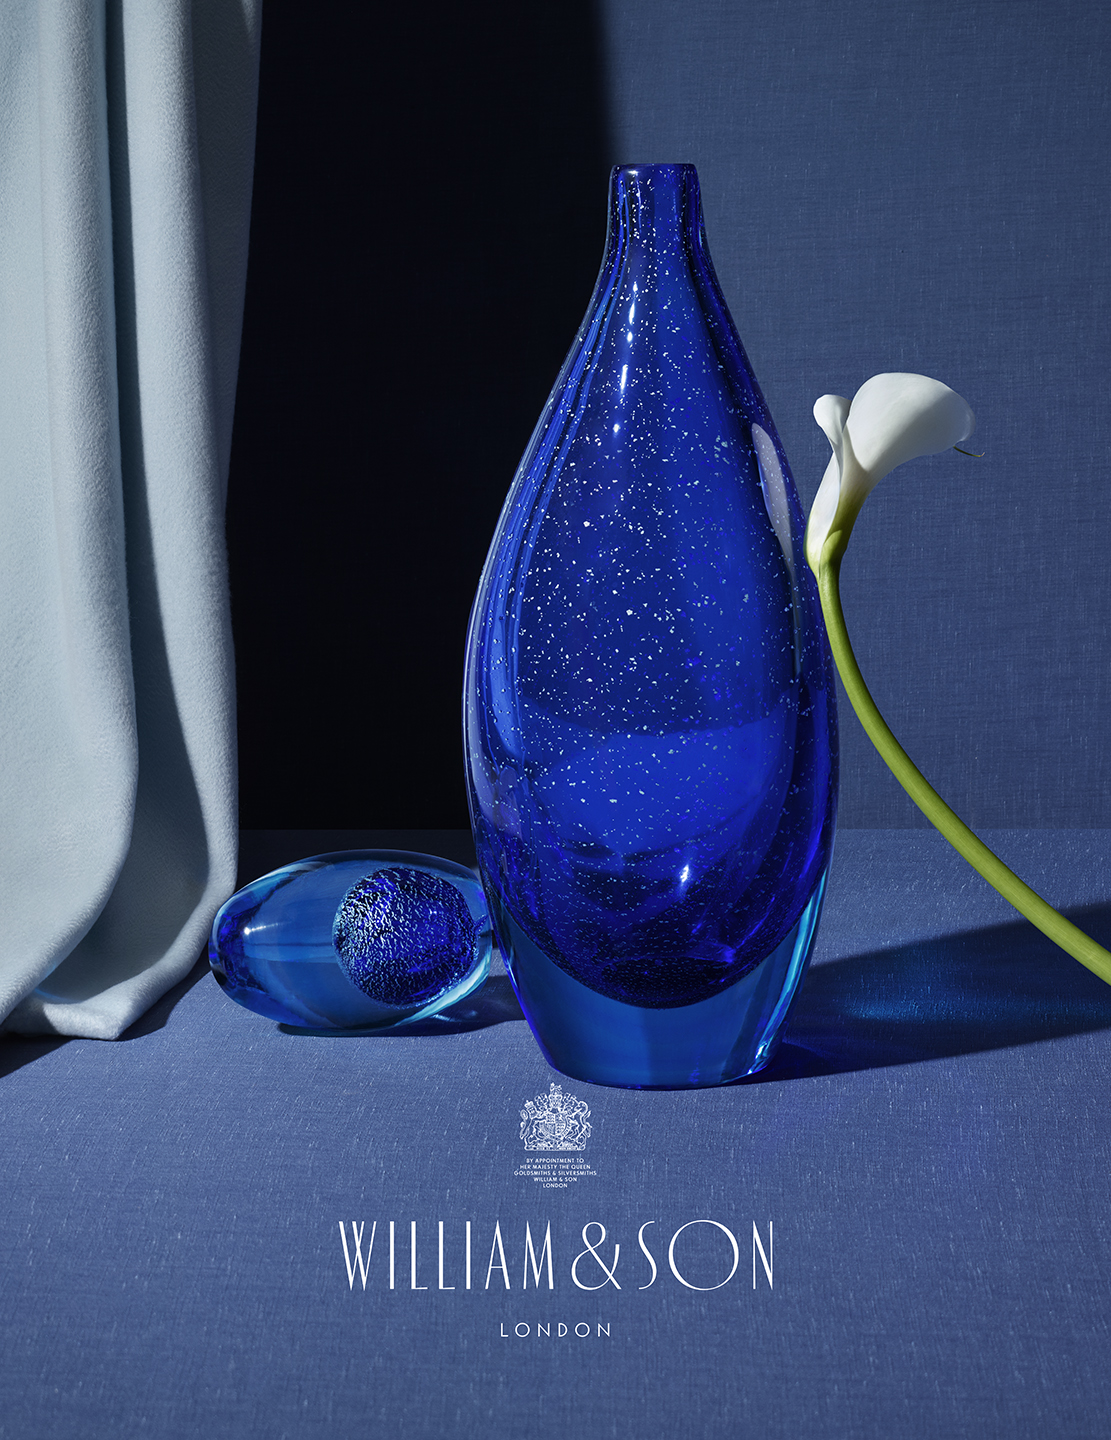 WILLIAM & SON, Homeware